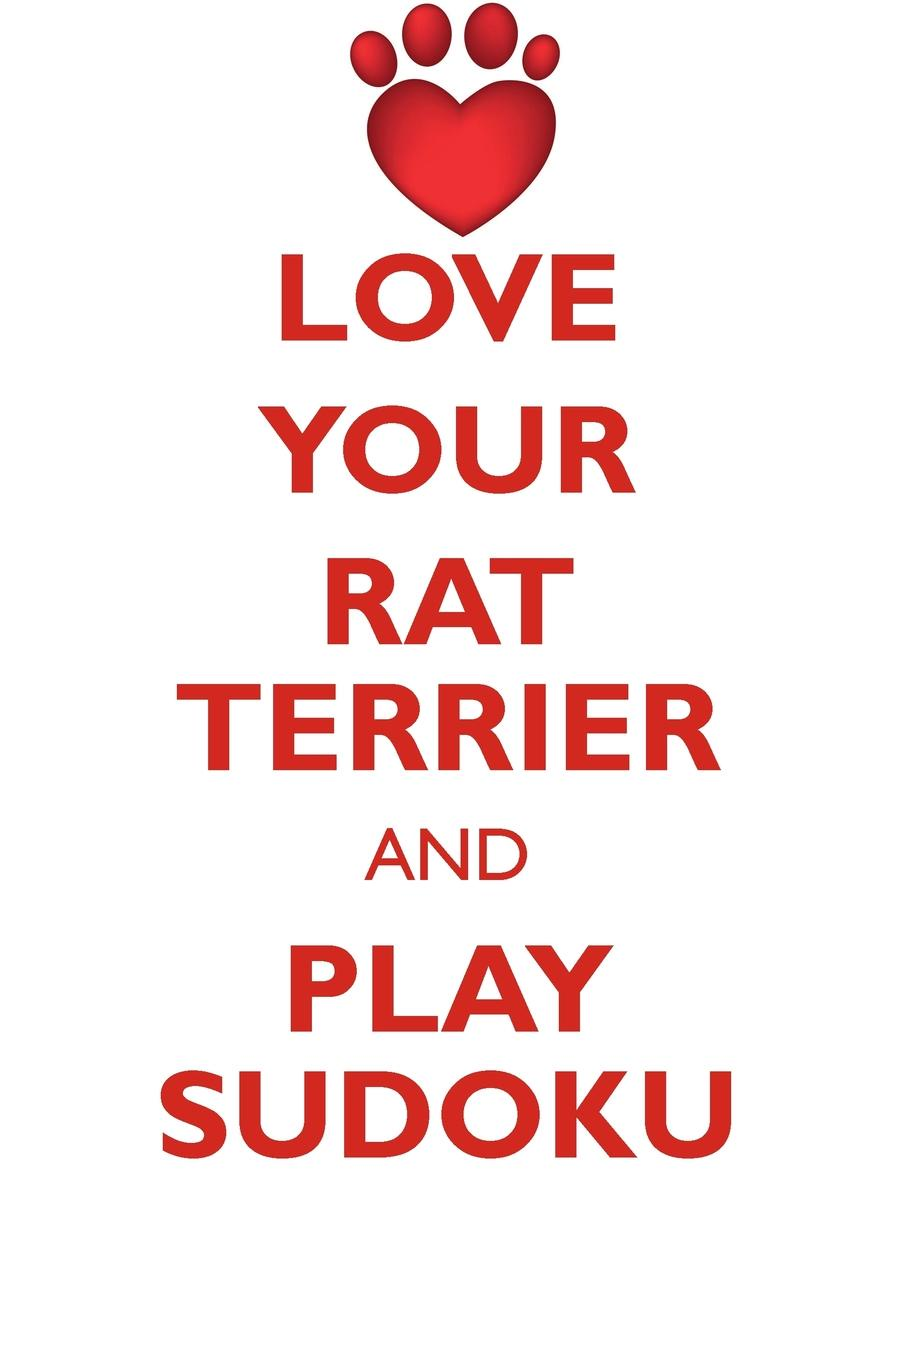 Loving Puzzles LOVE YOUR RAT TERRIER AND PLAY SUDOKU RAT TERRIER SUDOKU LEVEL 1 of 15 ontario rat i a page 1